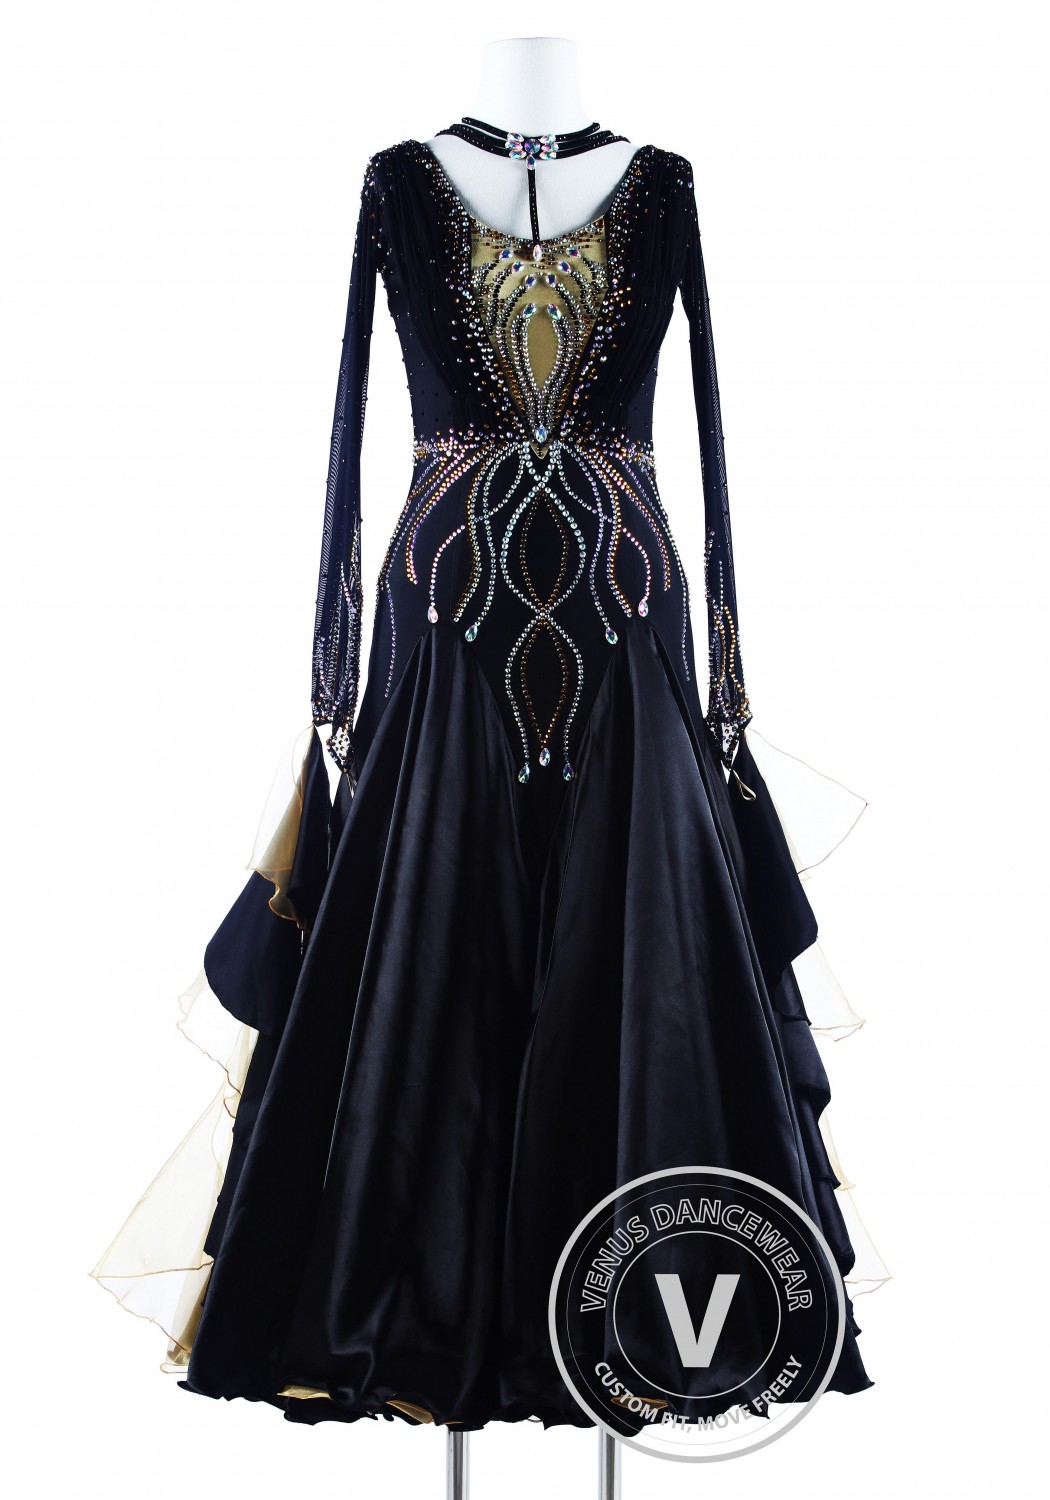 Black Golden Wave Luxury Foxtrot Waltz Quickstep Competition Dress